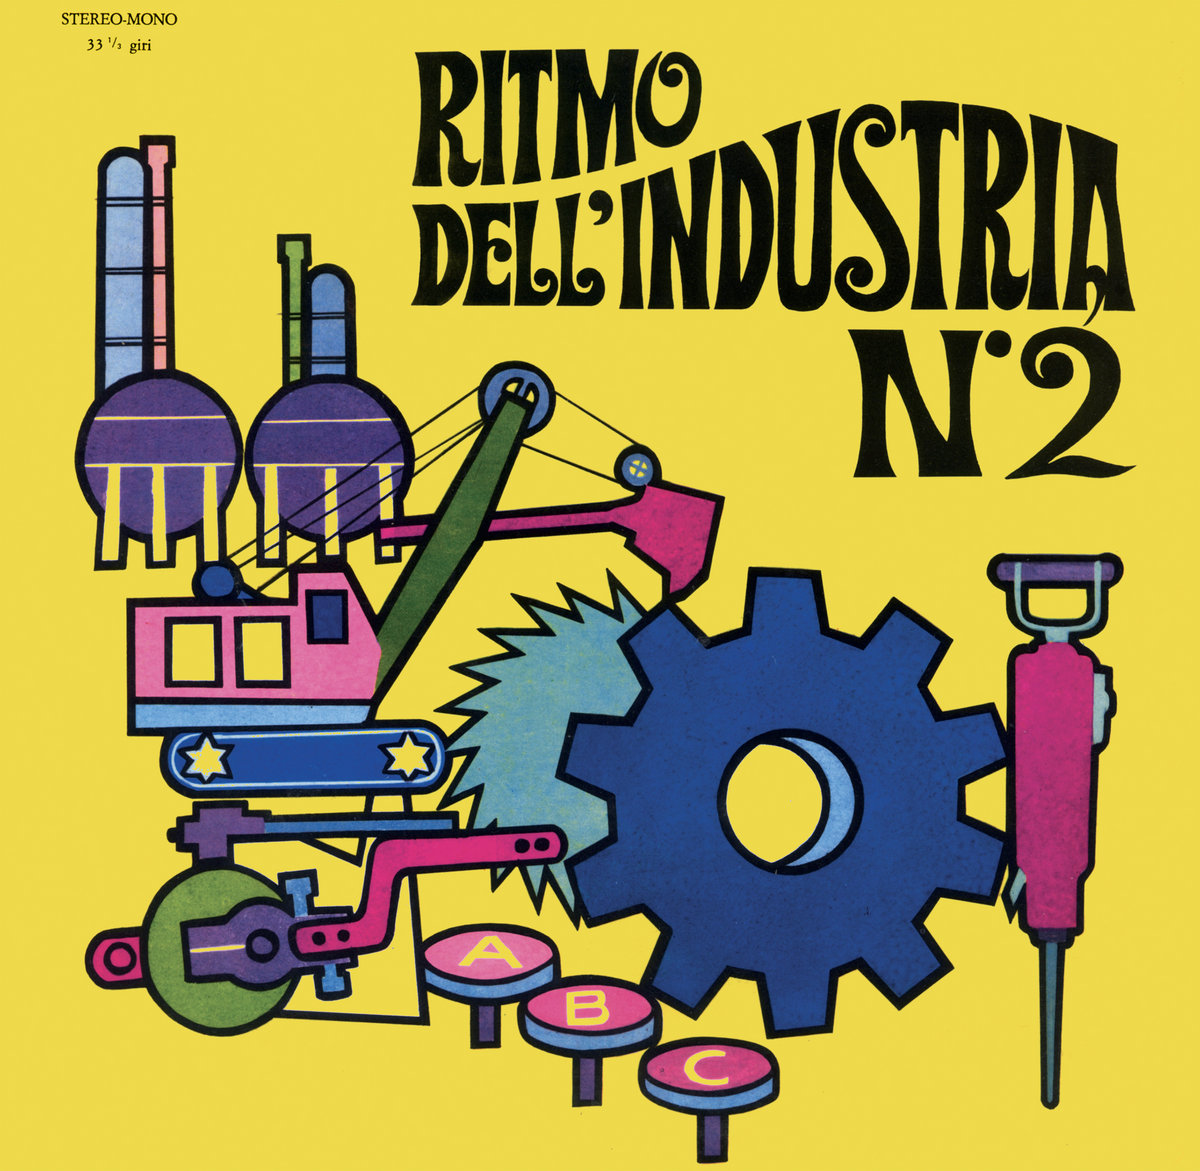 RITMO DELL'INDUSTRIA N°2